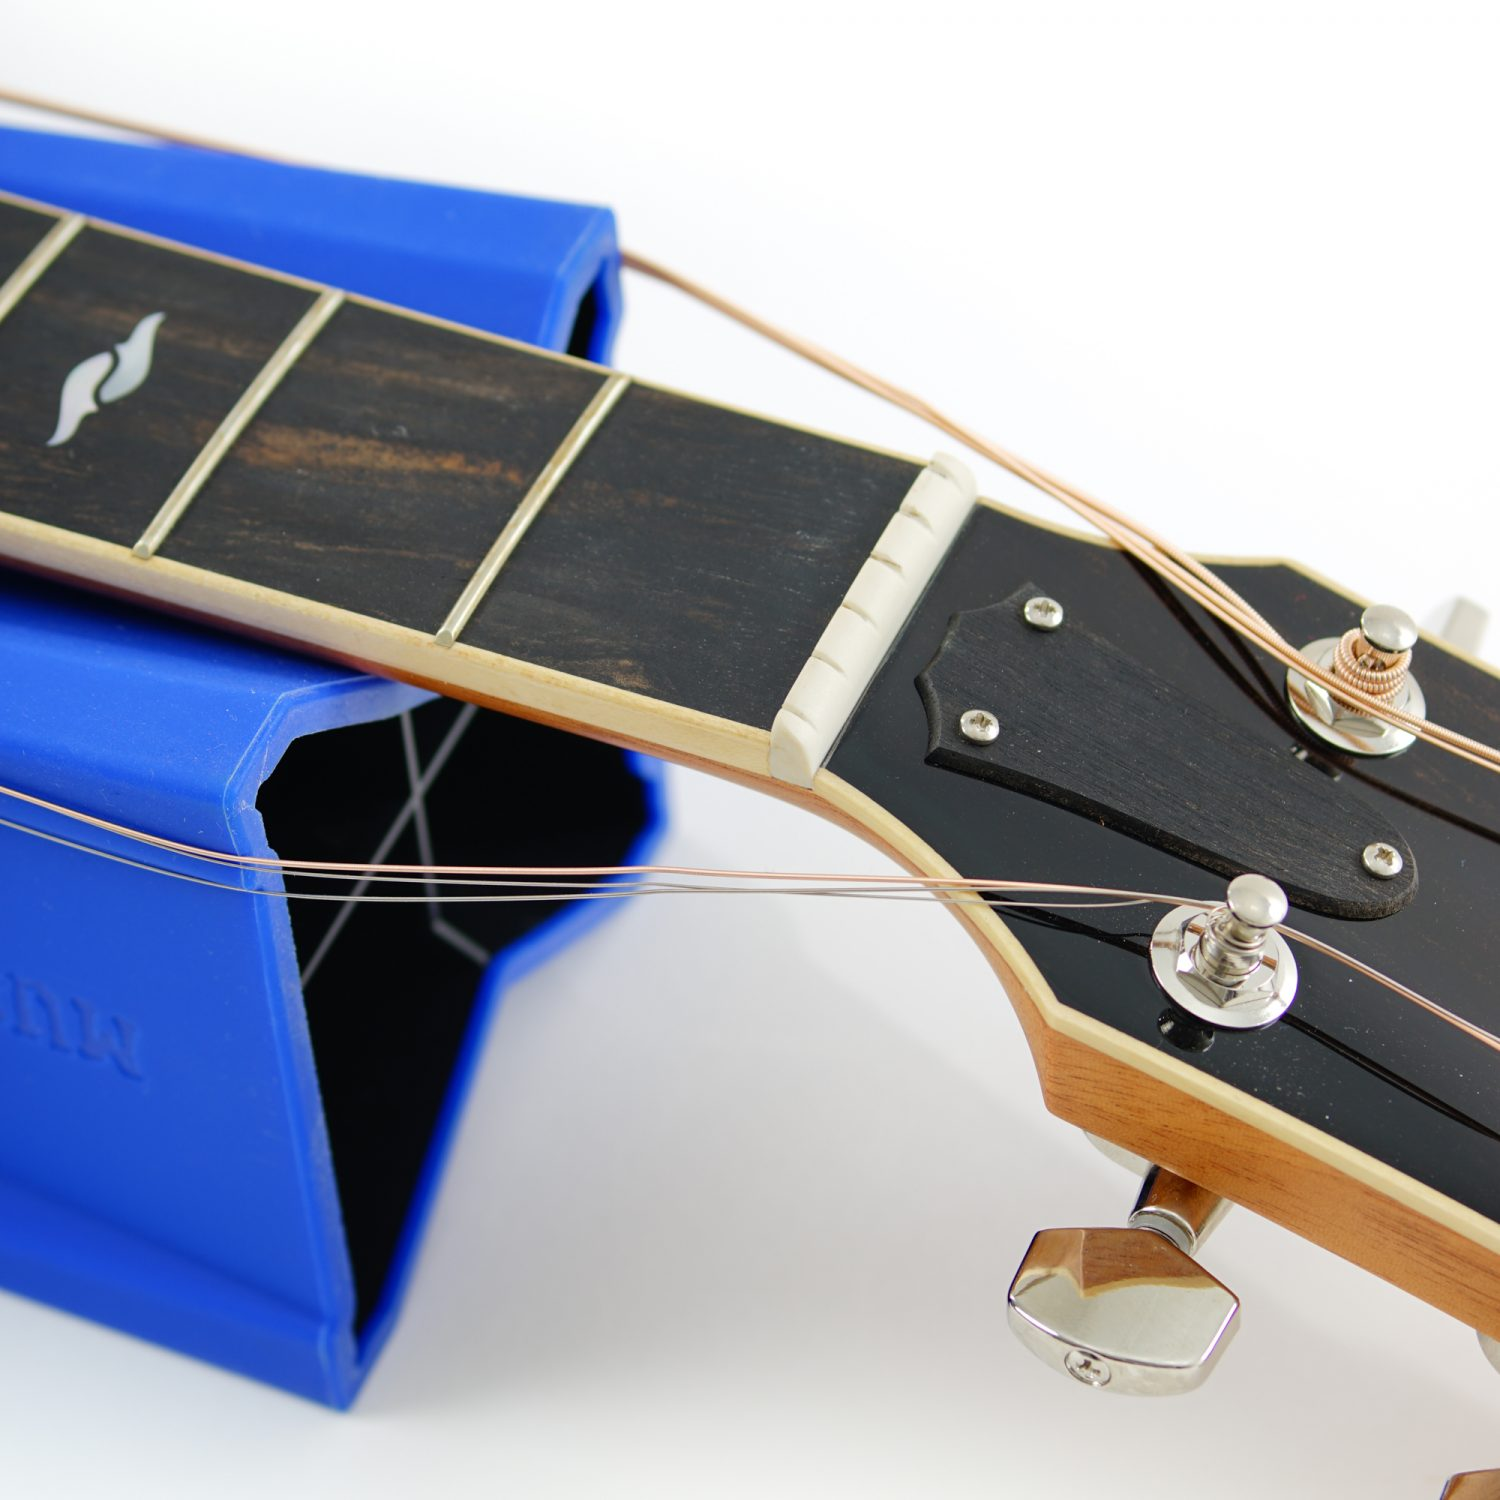 Cradle Cube holding back acoustic guitar strings